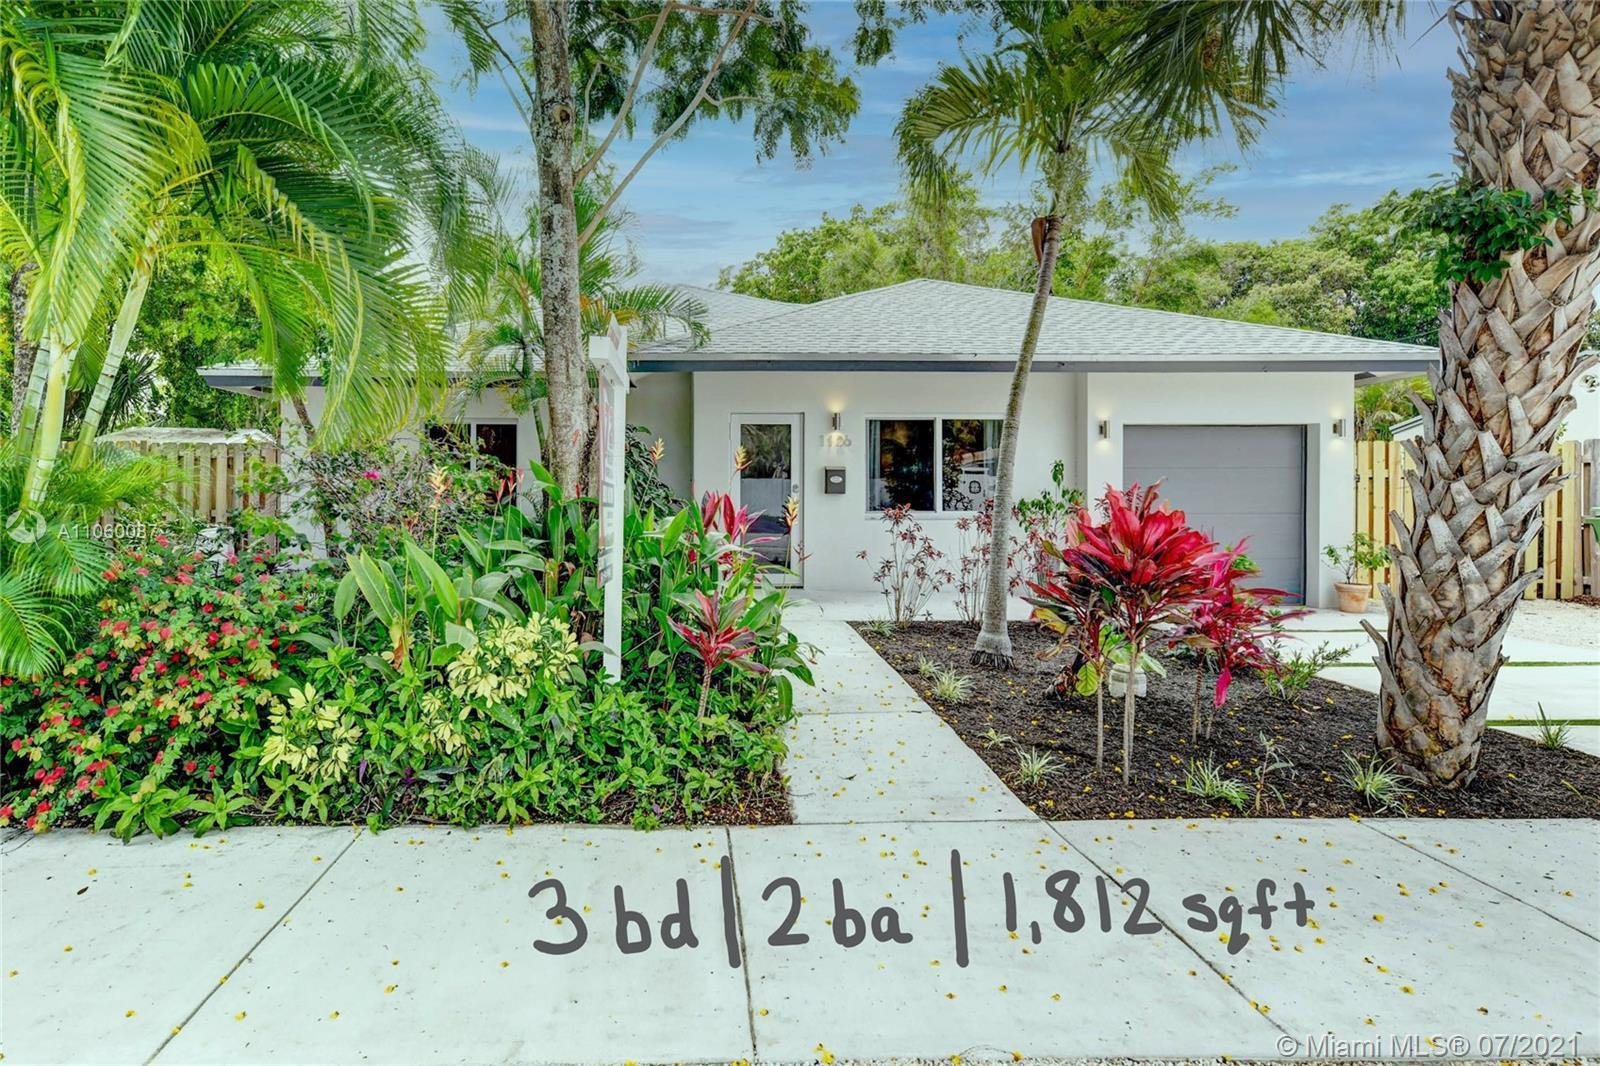 72 Hour Home Sale! - CALL NOW. ABSOLUTELY GORGEOUS 3bed, 2bath 1,812 sqft NEWLY CONSTRUCTED home in